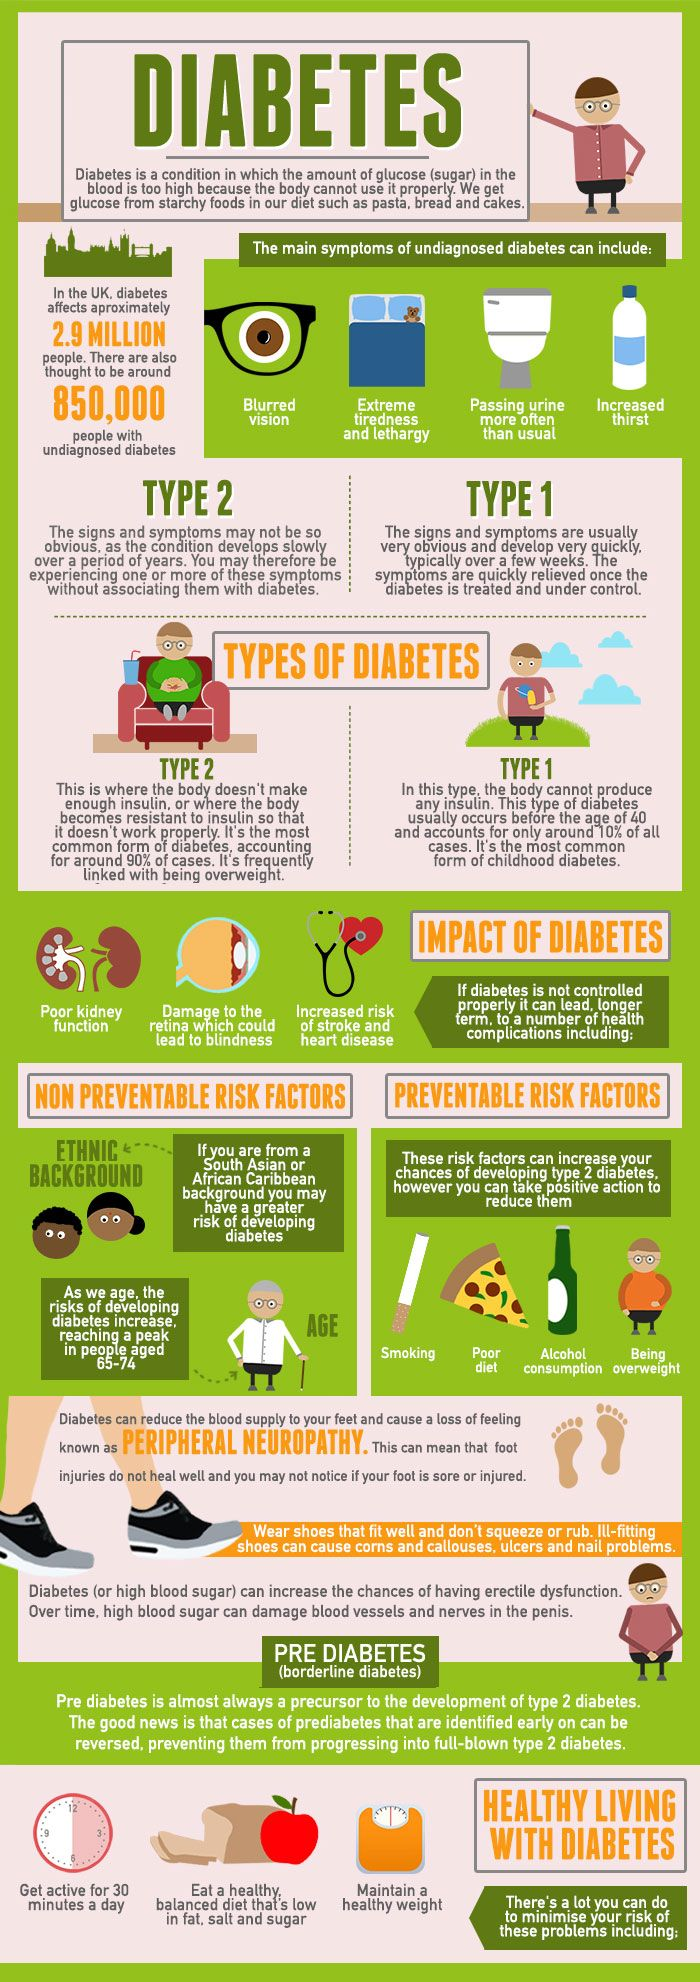 Diabetes symptoms, prevention, living with diabetes infographic